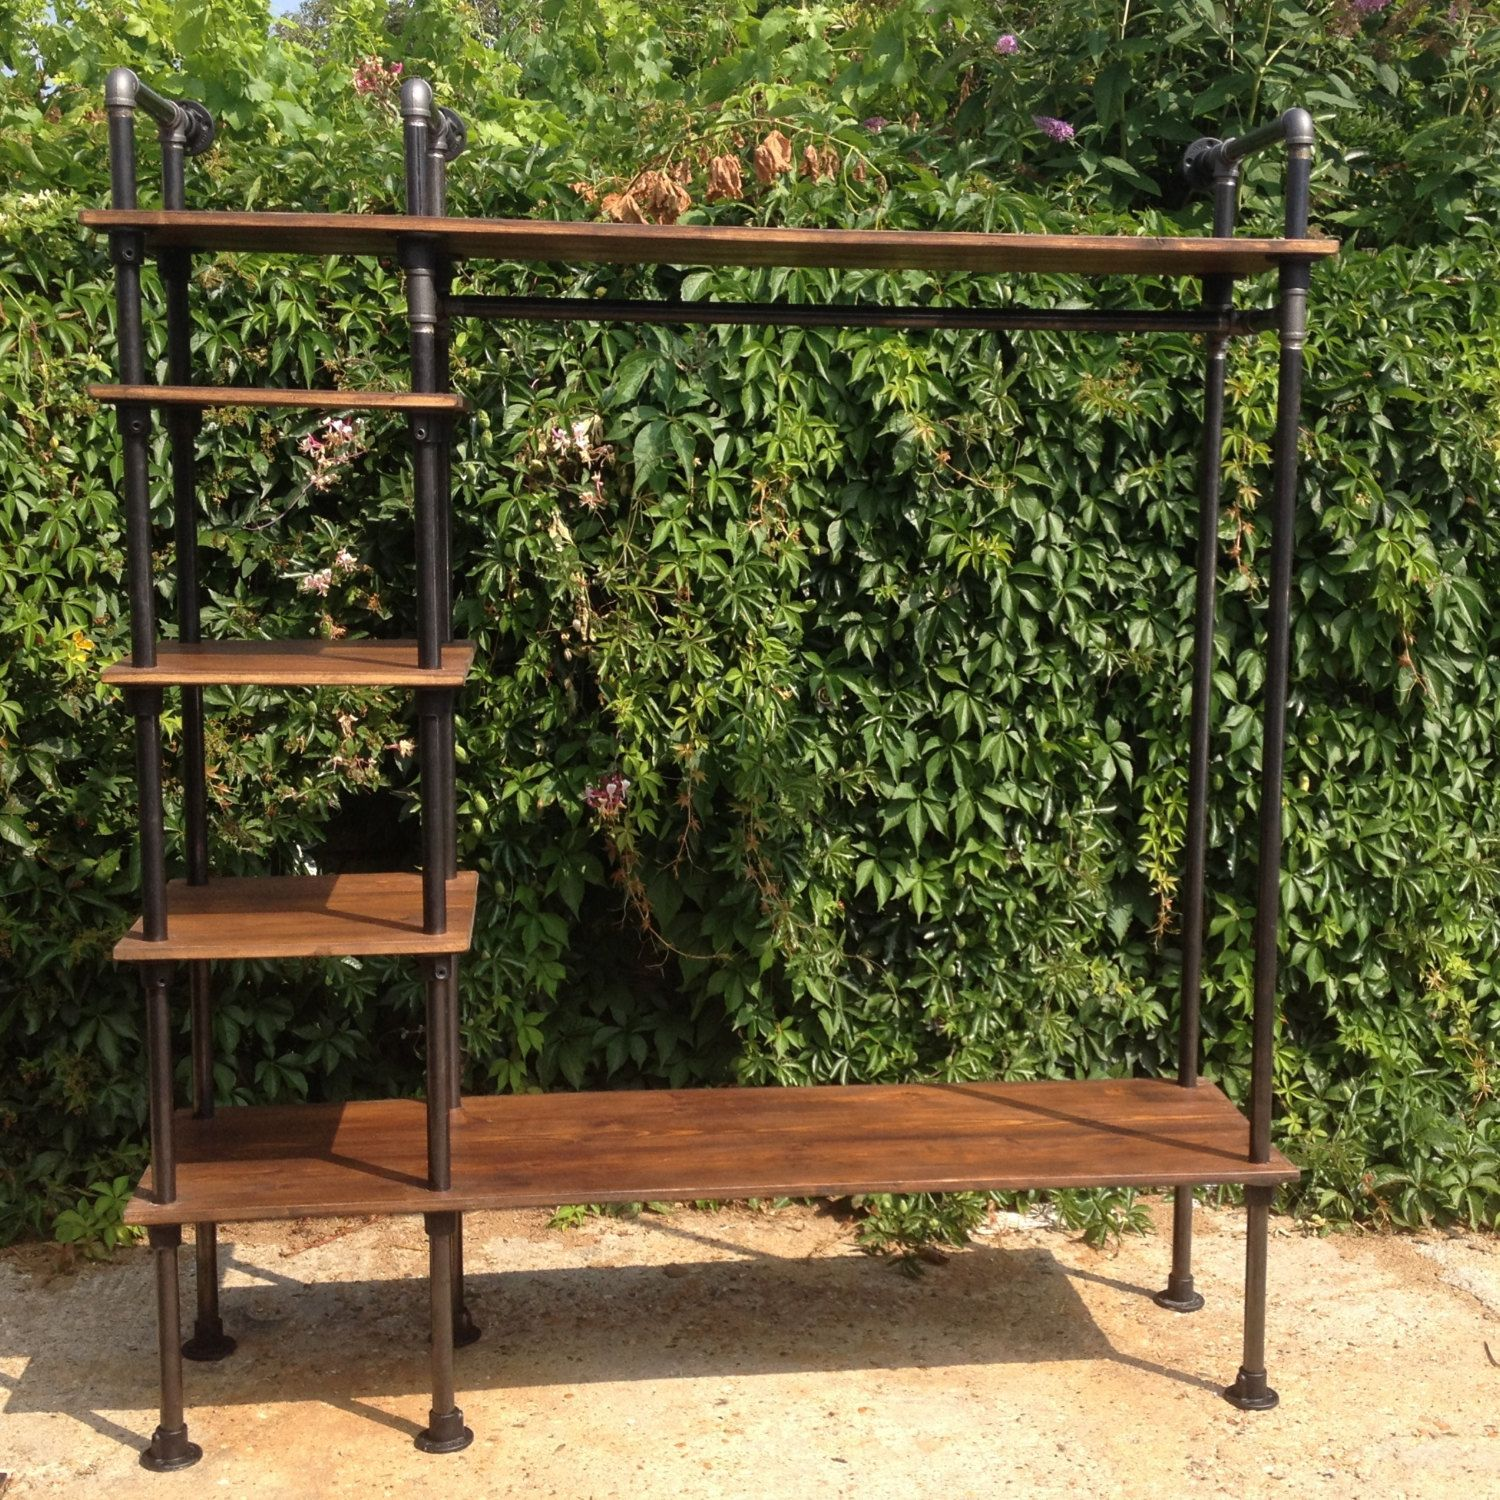 Clothes rail vintage industrial style by breuhaus on etsy